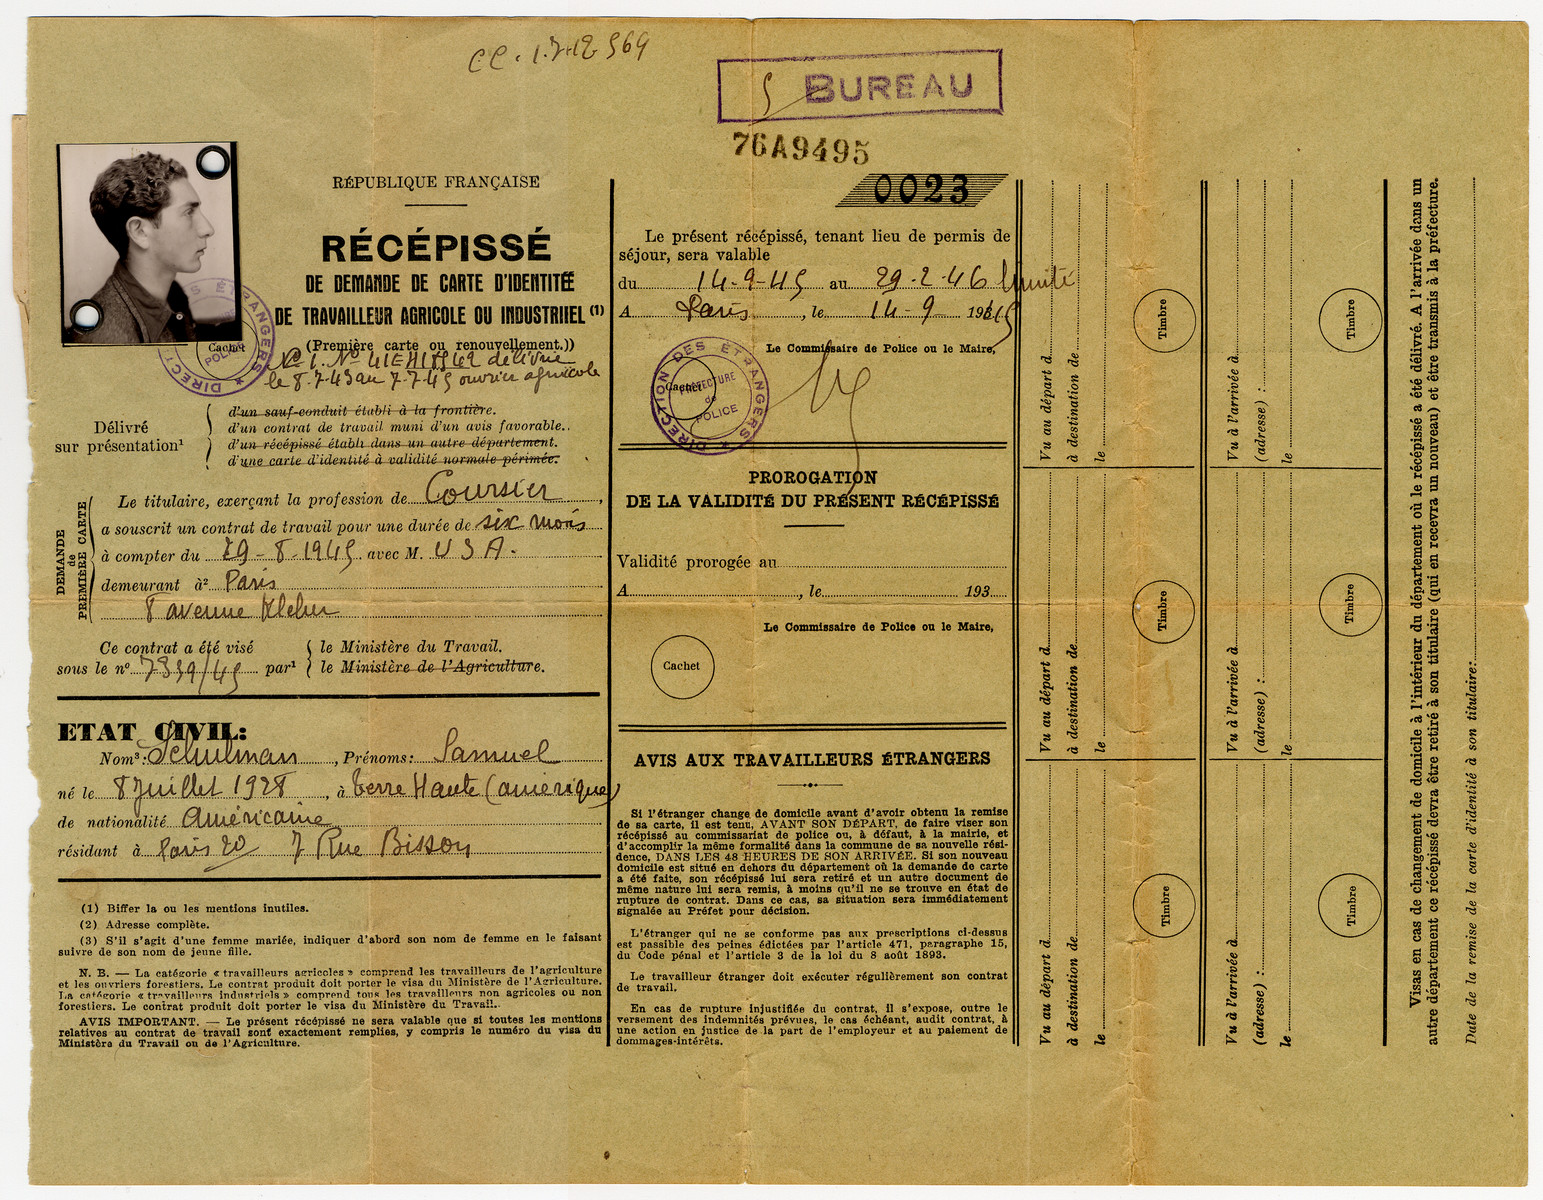 Document granting Samuel Schulman, an American citizen, permission to work as a courrier in France for a six month period.